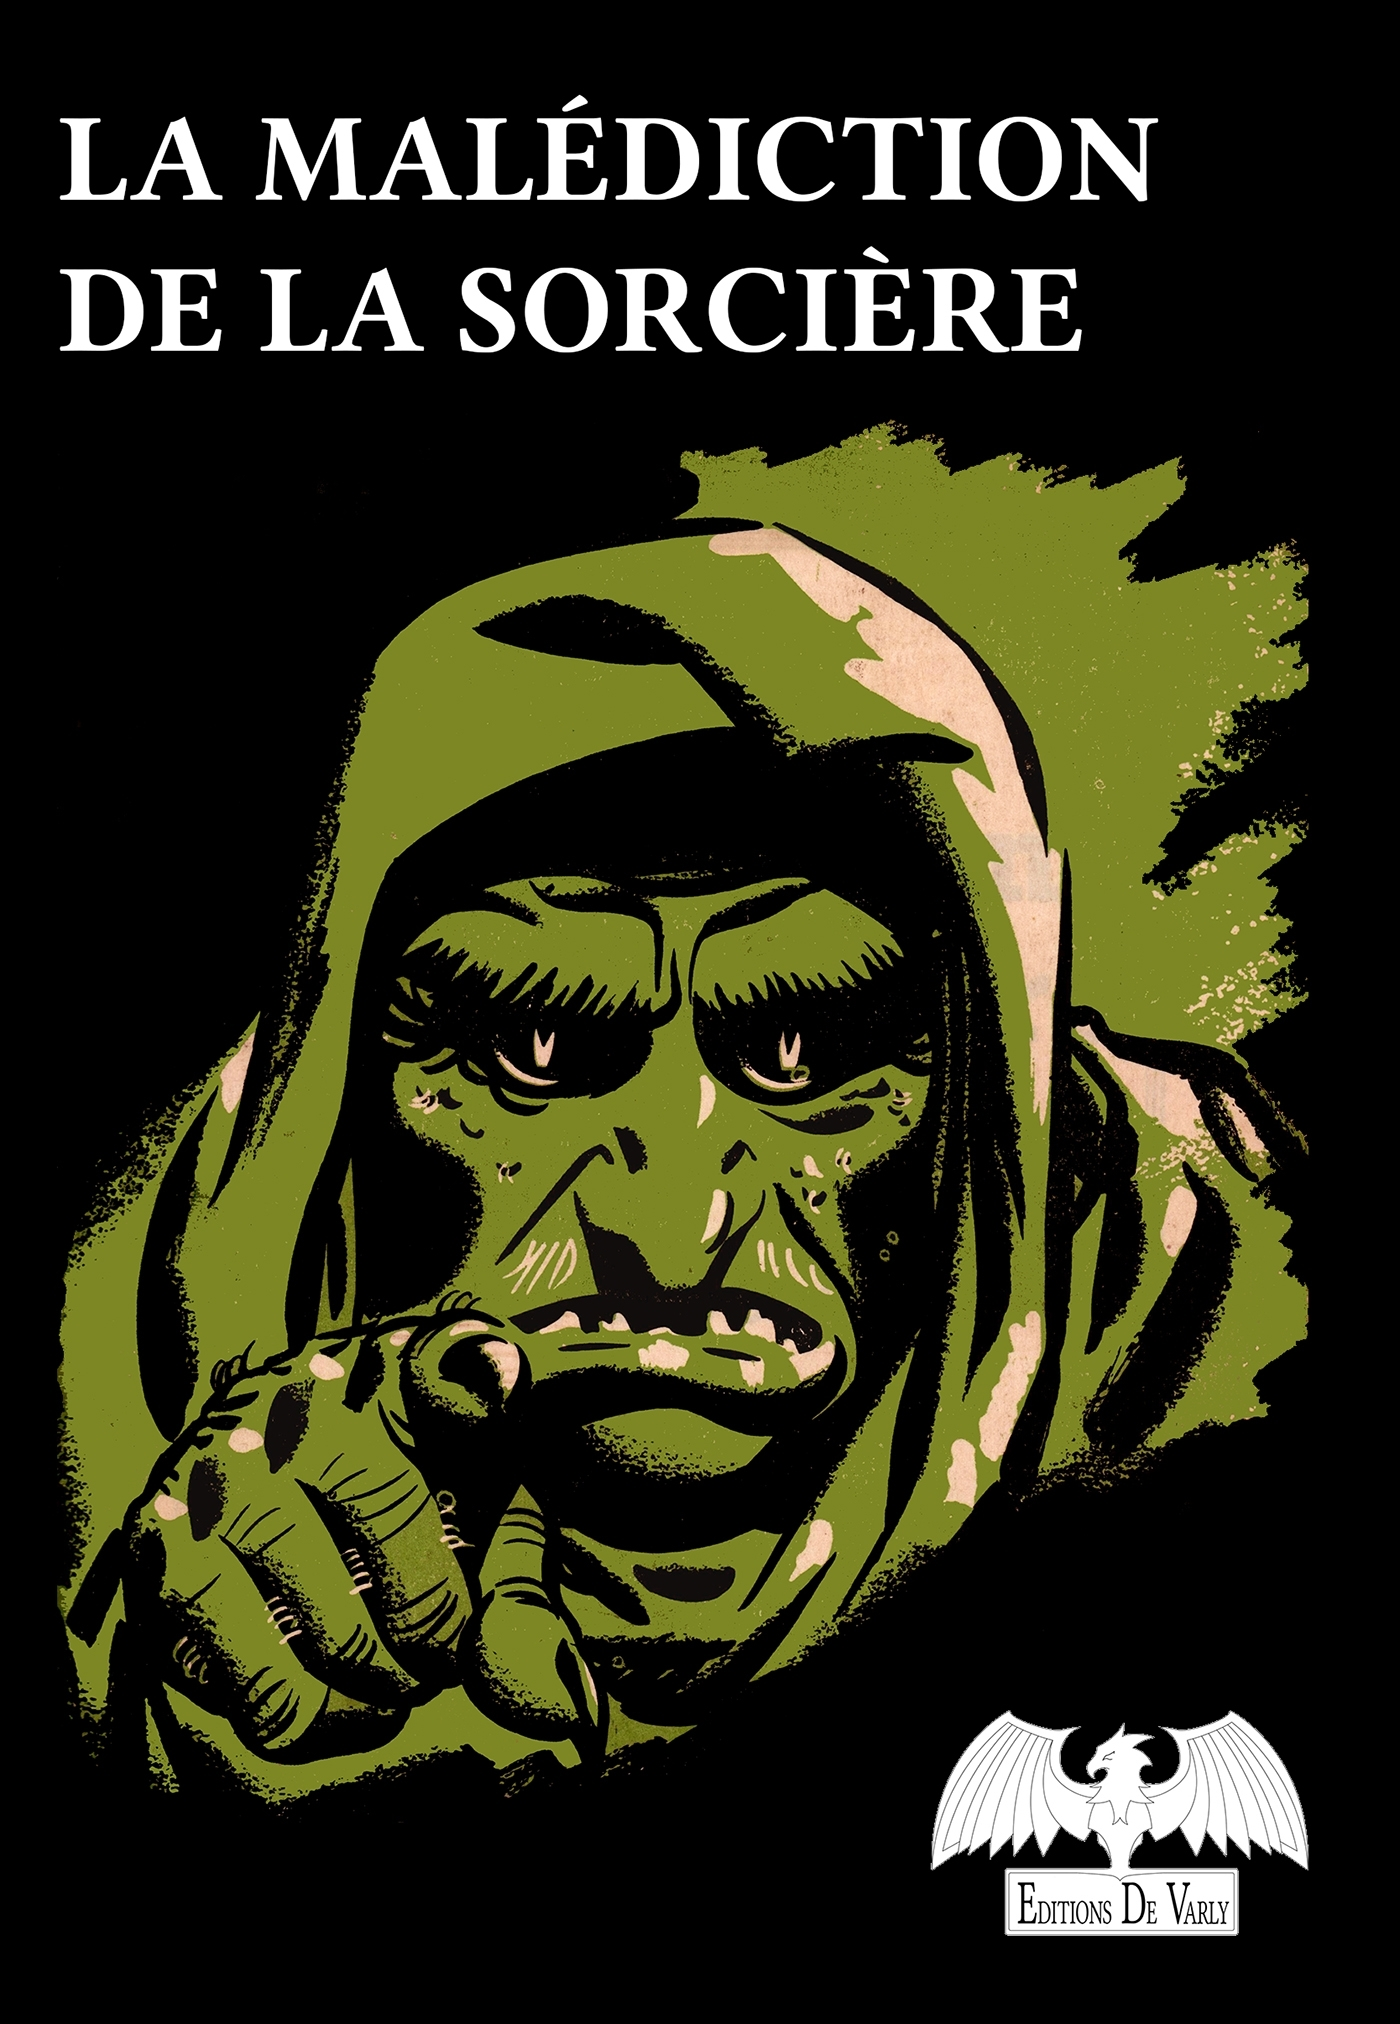 LA MALEDICTION DE LA SORCIERE